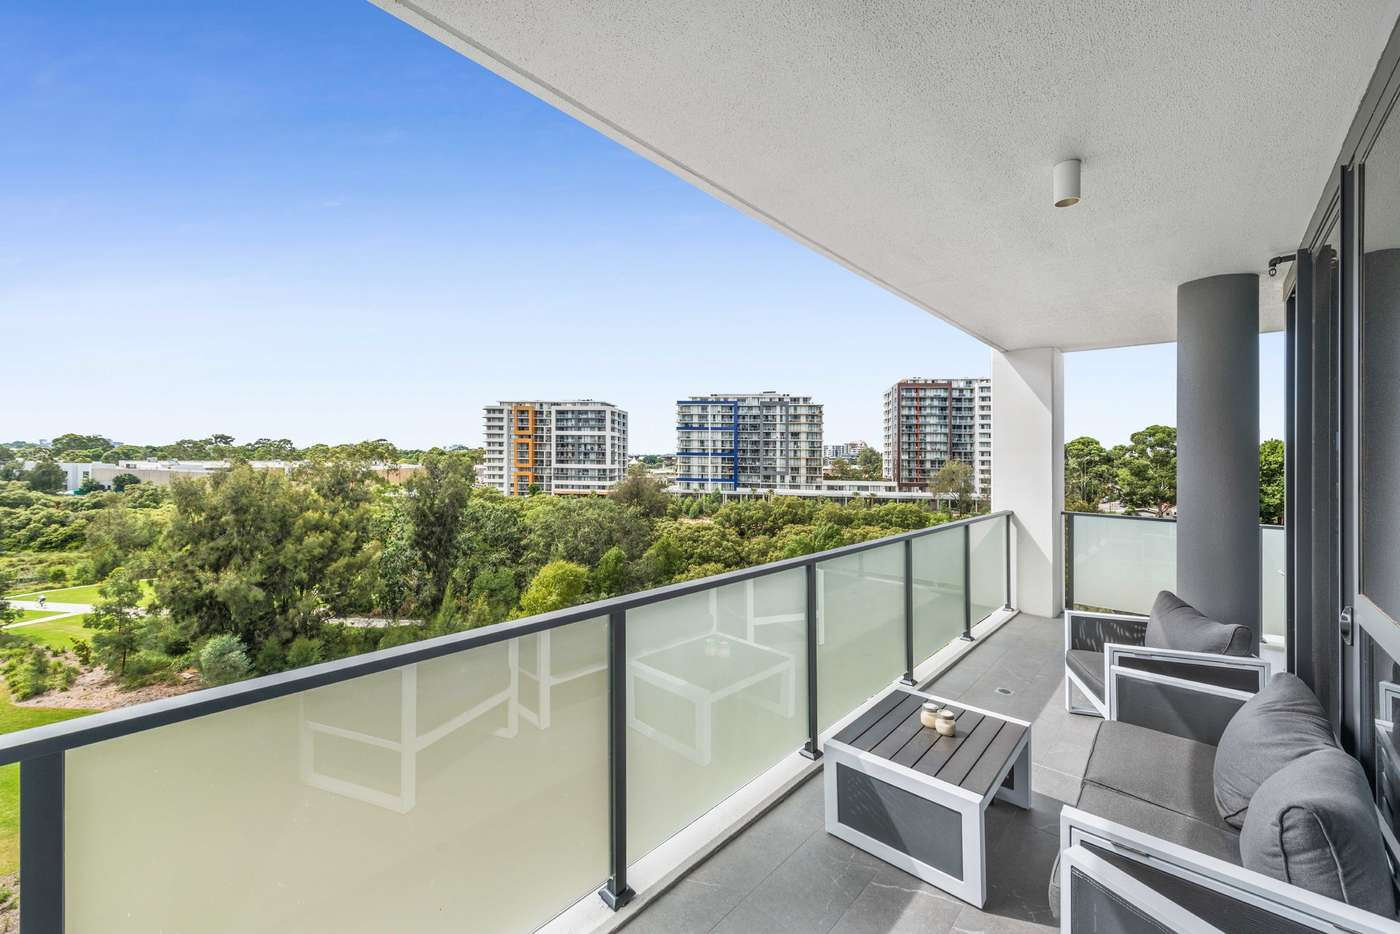 Fifth view of Homely apartment listing, 506/2H Morton Street, Parramatta NSW 2150